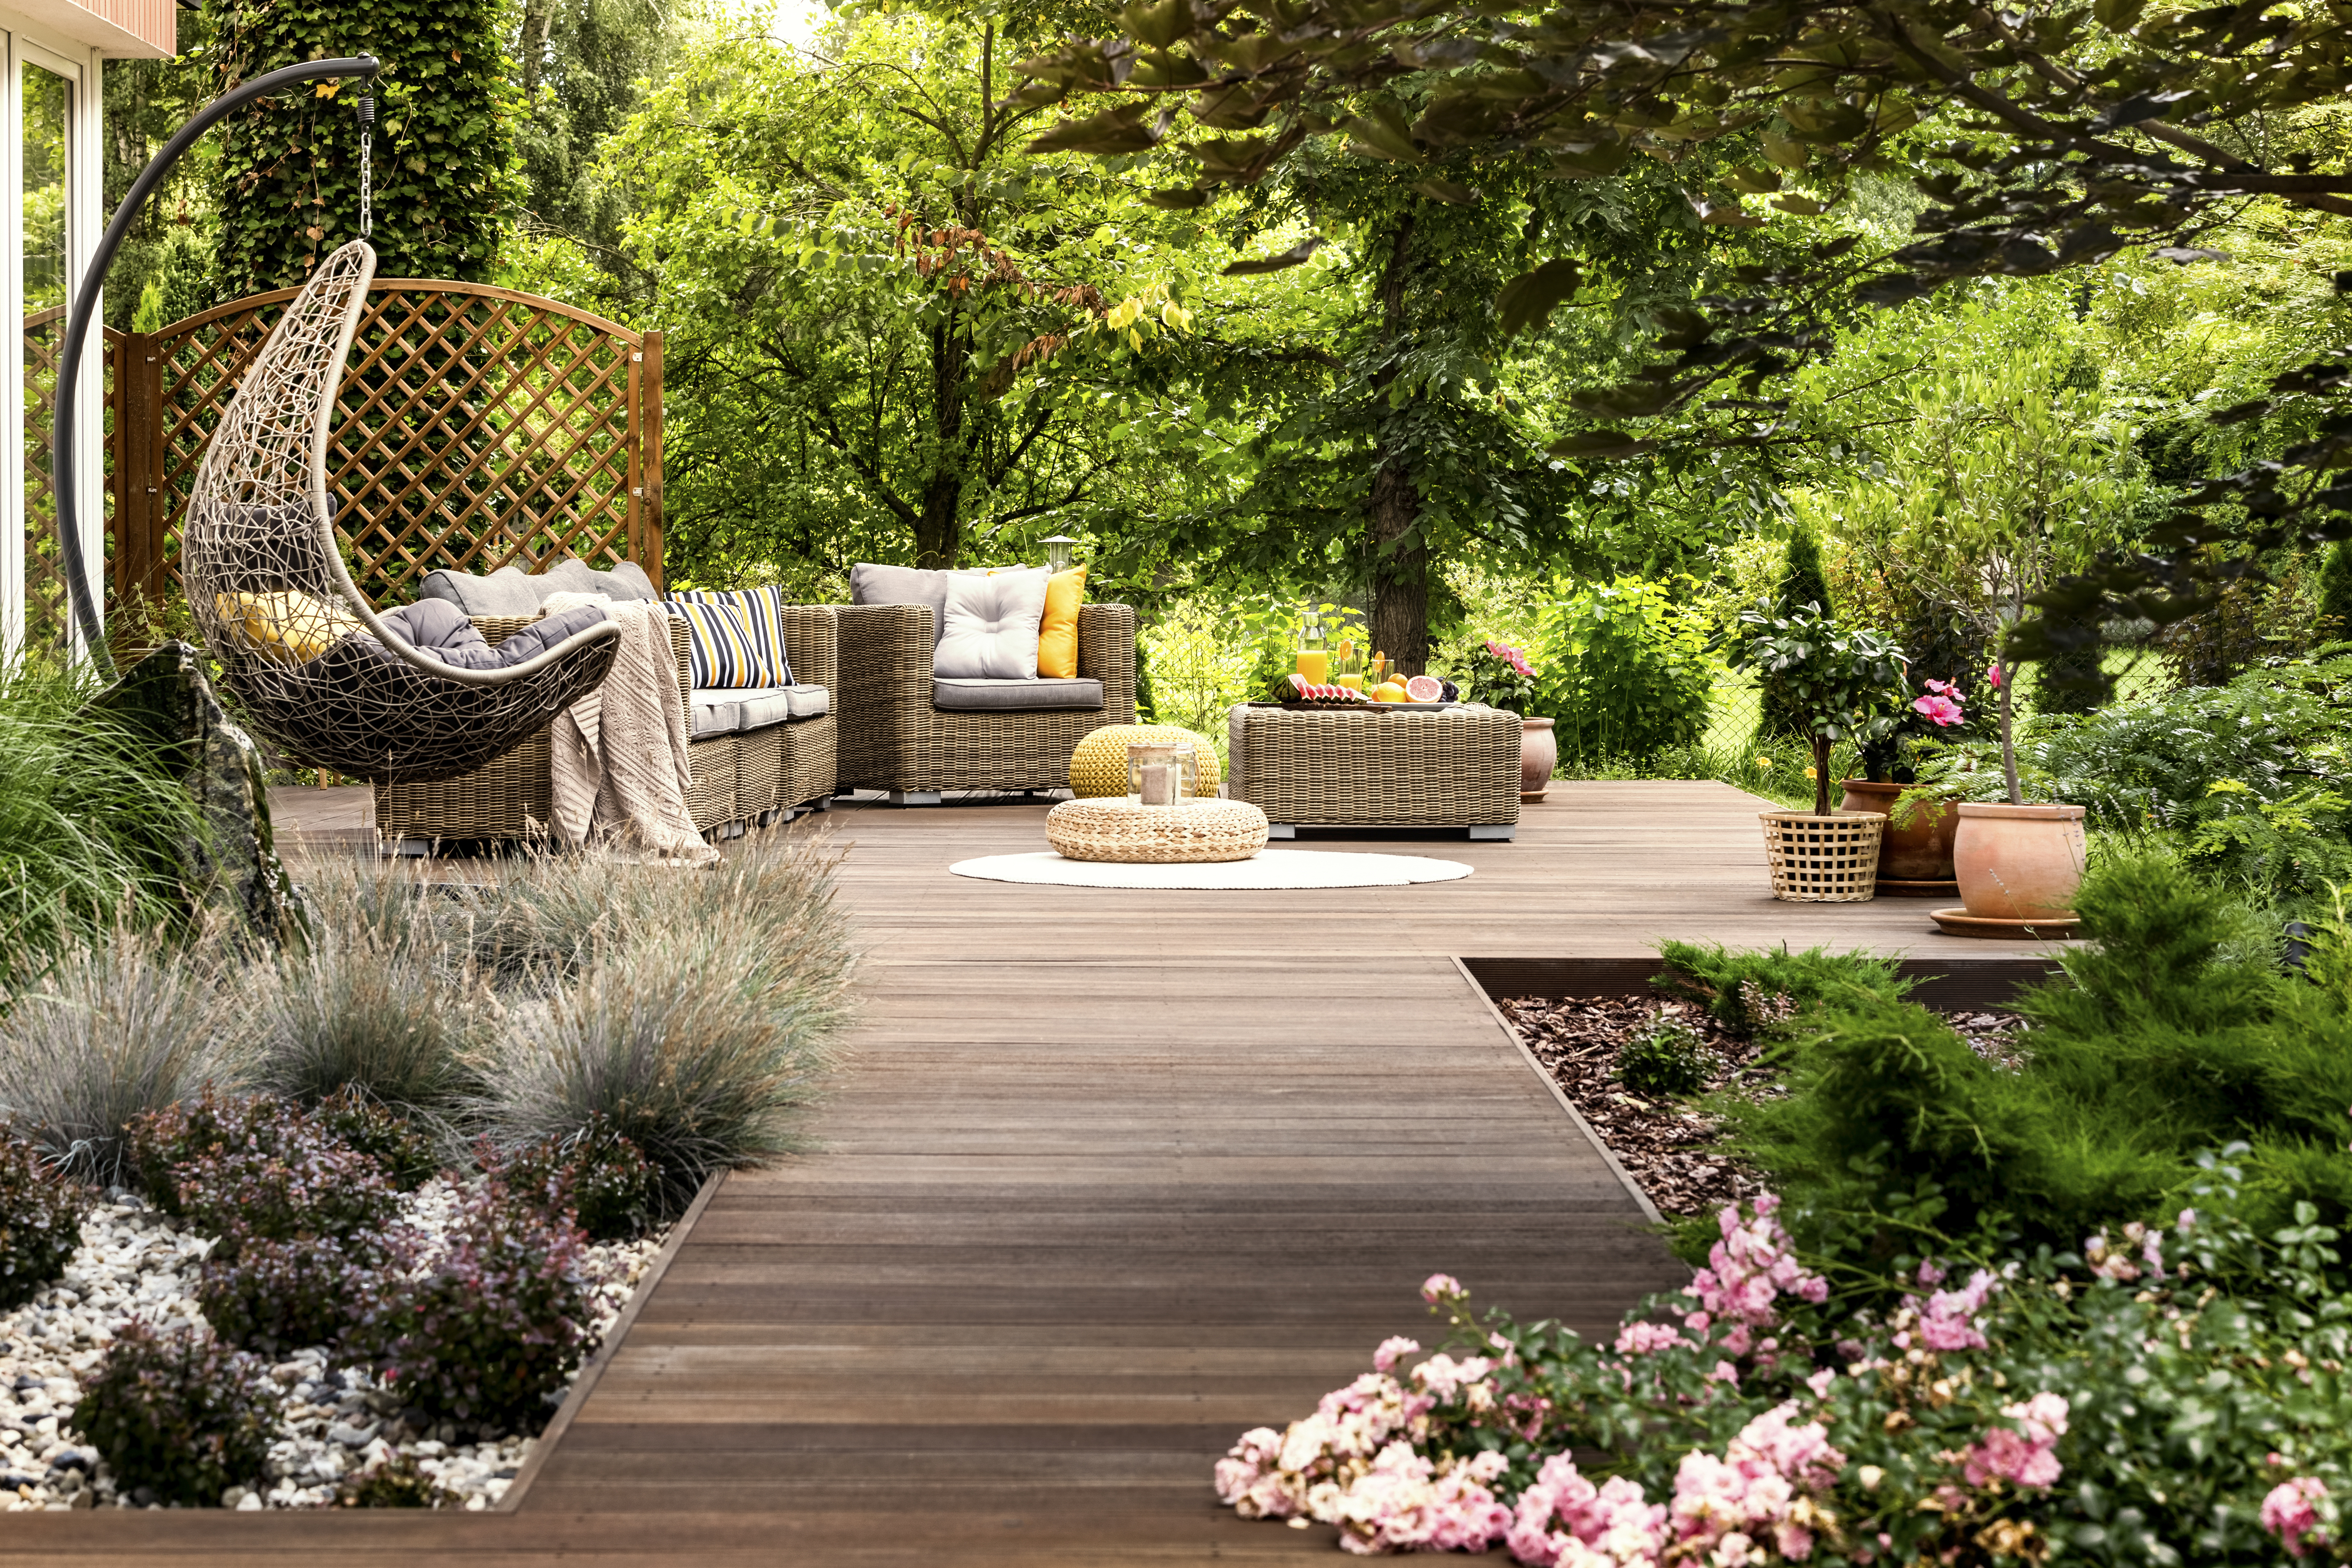 Wooden terrace surrounded by greenery